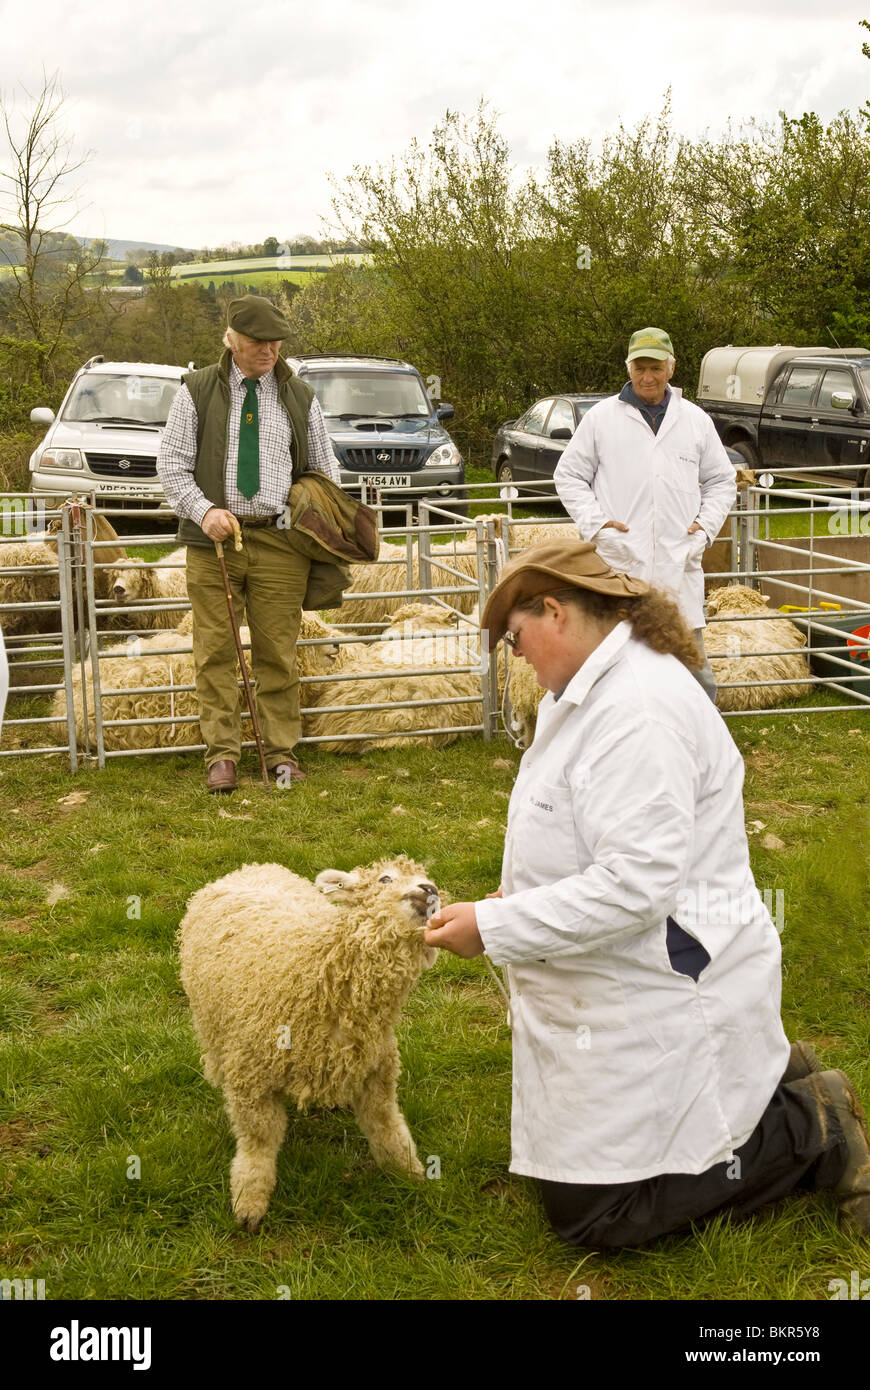 country or county show with farmers showing sheep, live stock pens in background Devon England UK 2010 - Stock Image